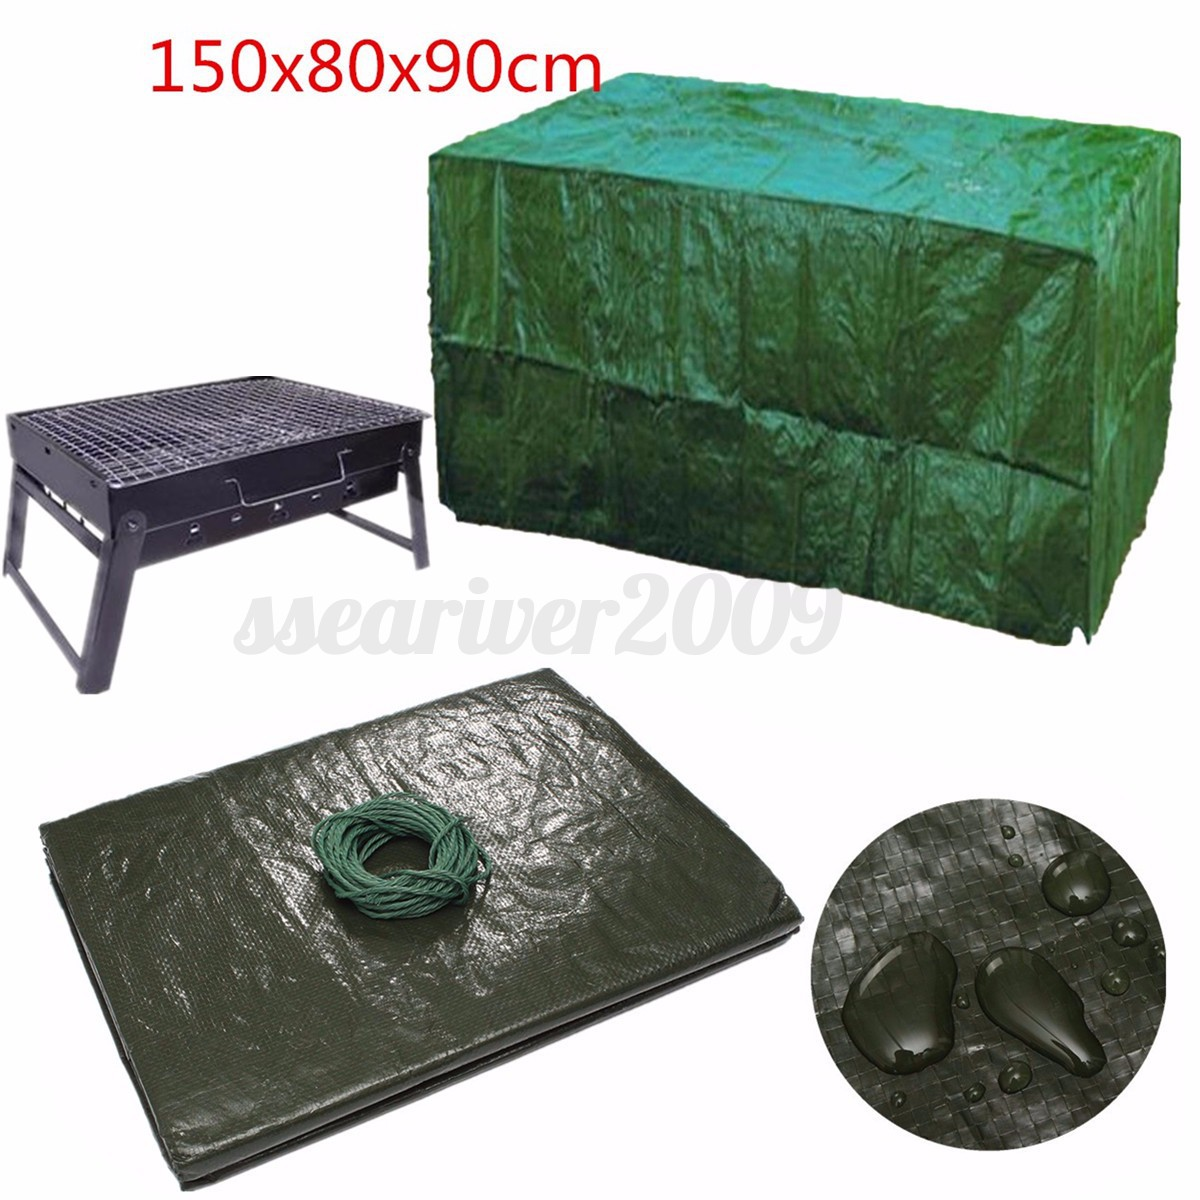 table and chair covers ebay costco beach chairs backpack waterproof furniture cover for garden outdoor patio bench